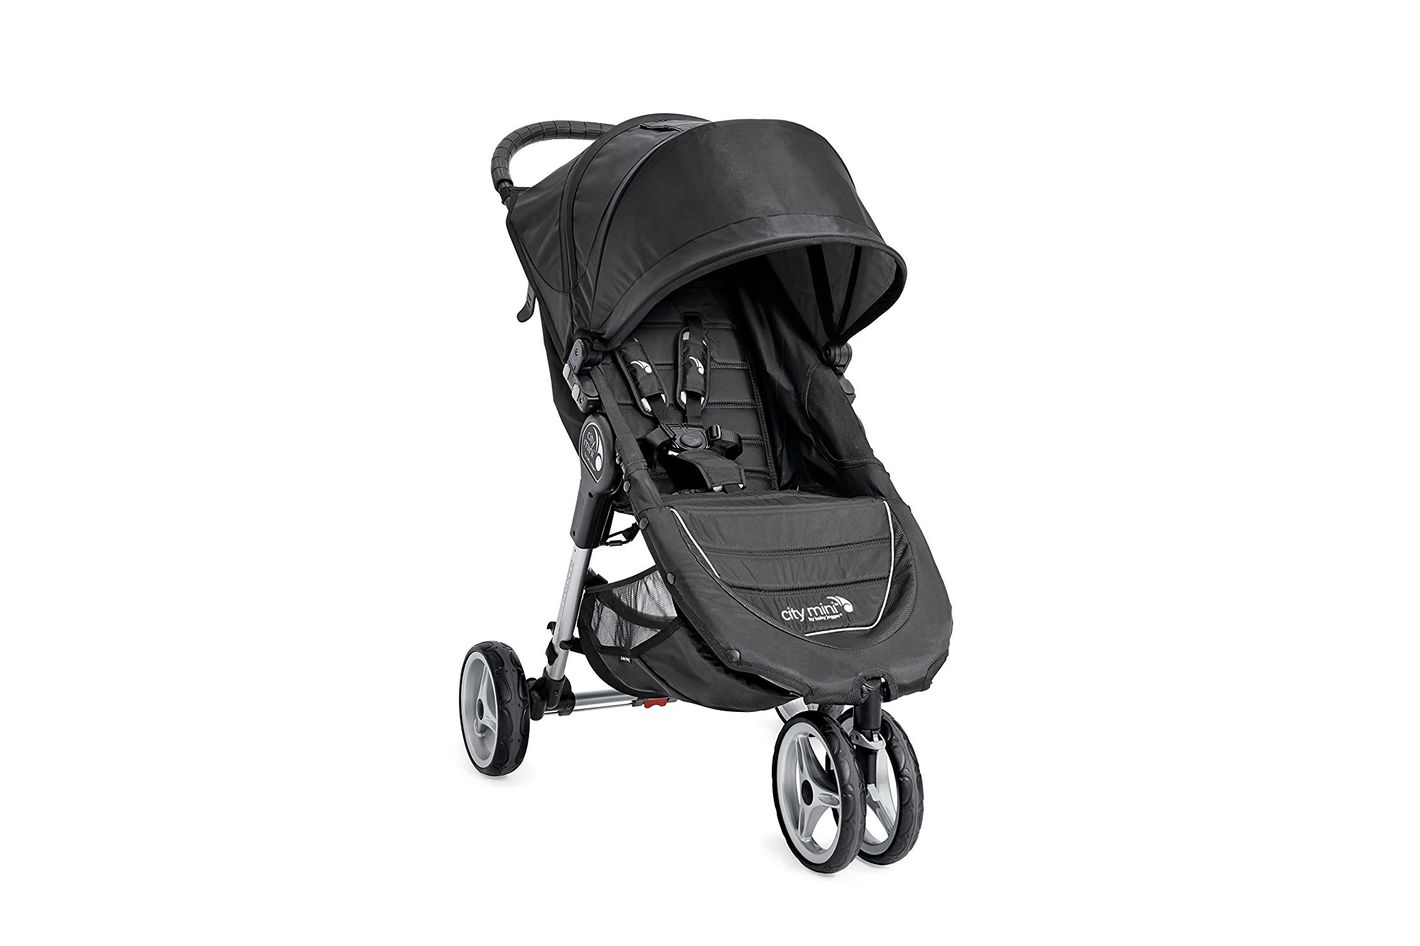 Which stroller is best for the newborn